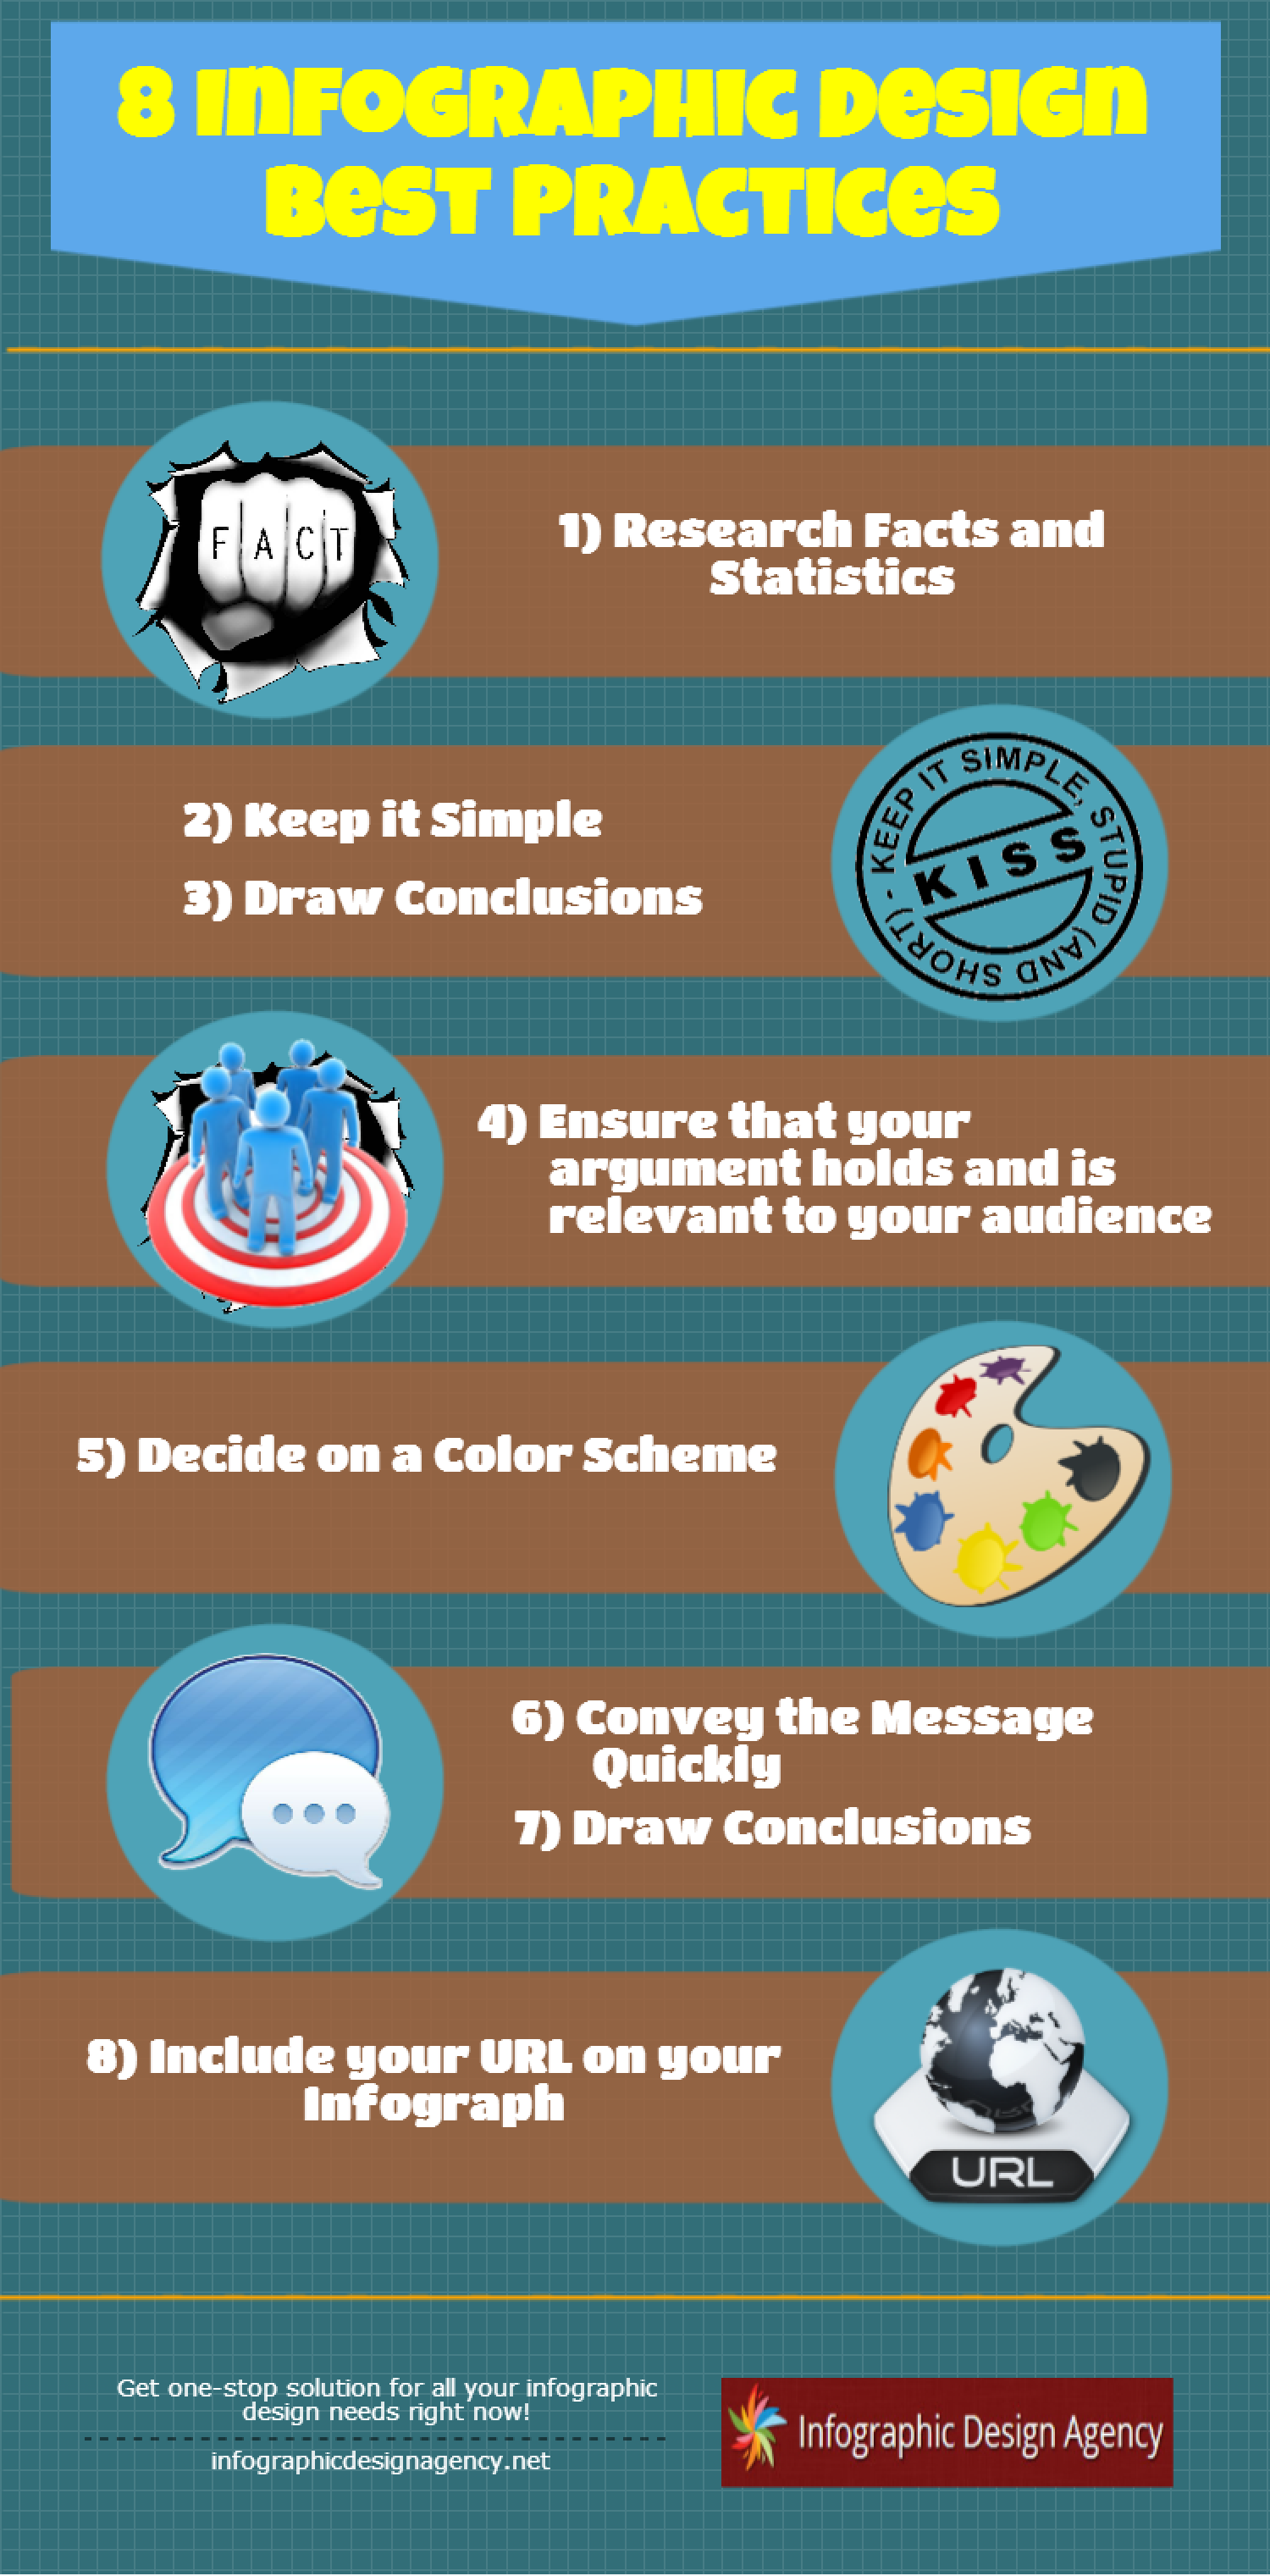 Infographic Design Agency Infographic